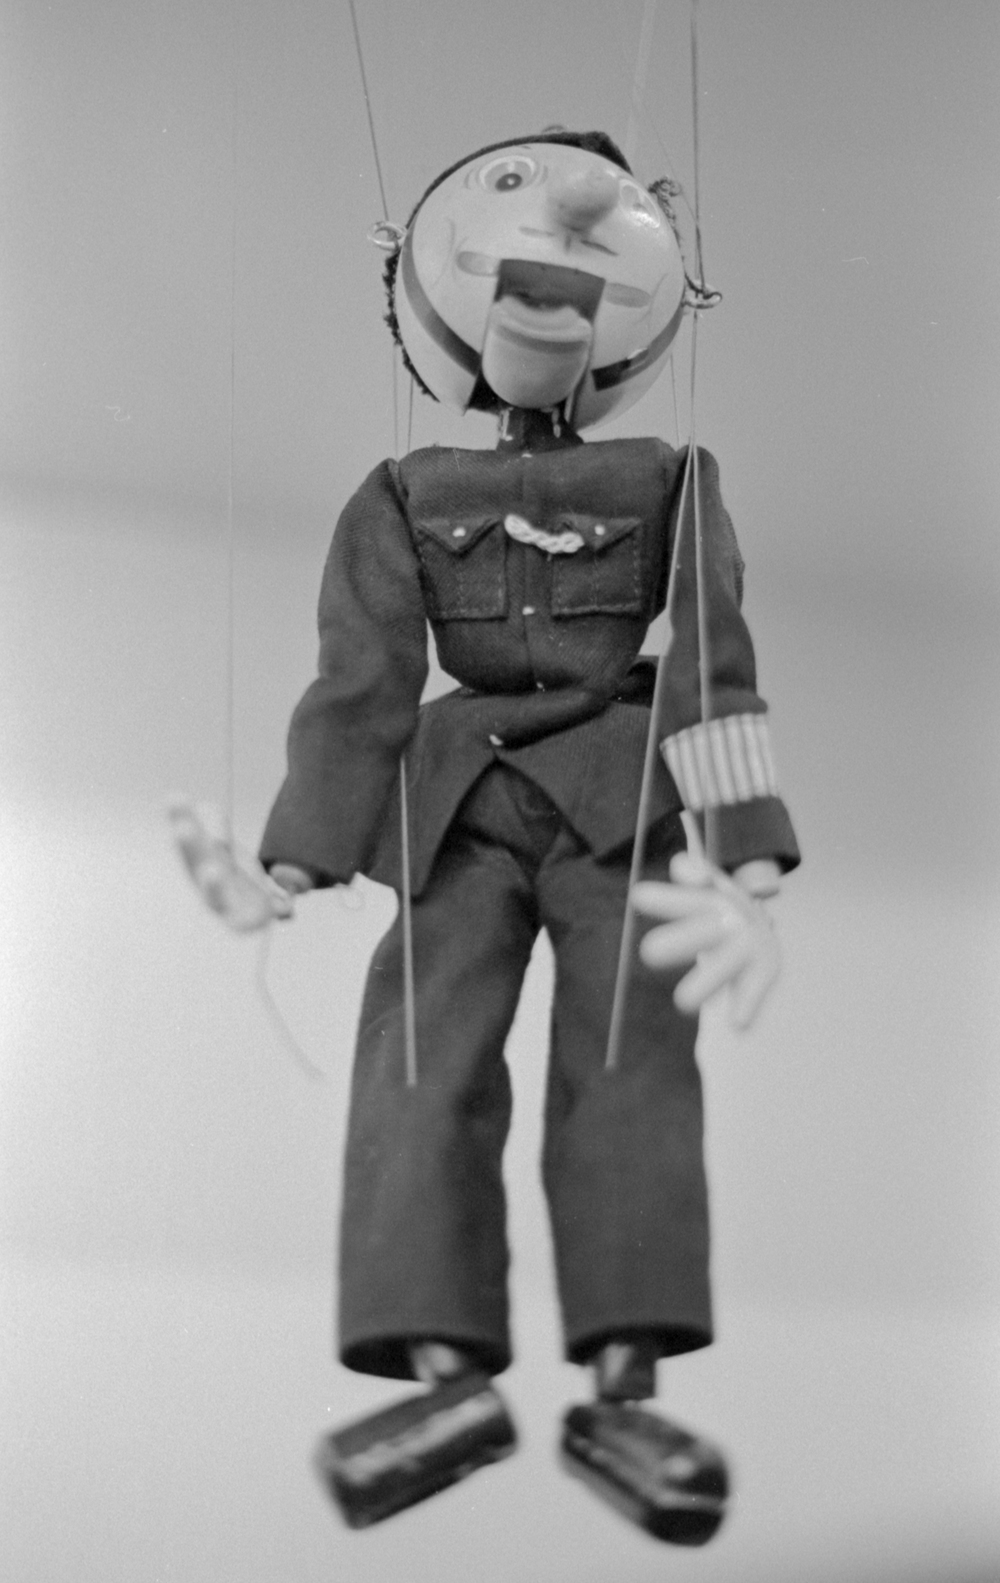 20 Aug 2016, Vintage puppet, Country Antique Fair Mall, Santa Clarita, CA, Kodak Tr-X 400, Canon EOS-1, Developed (D-76) and Scanned by me.